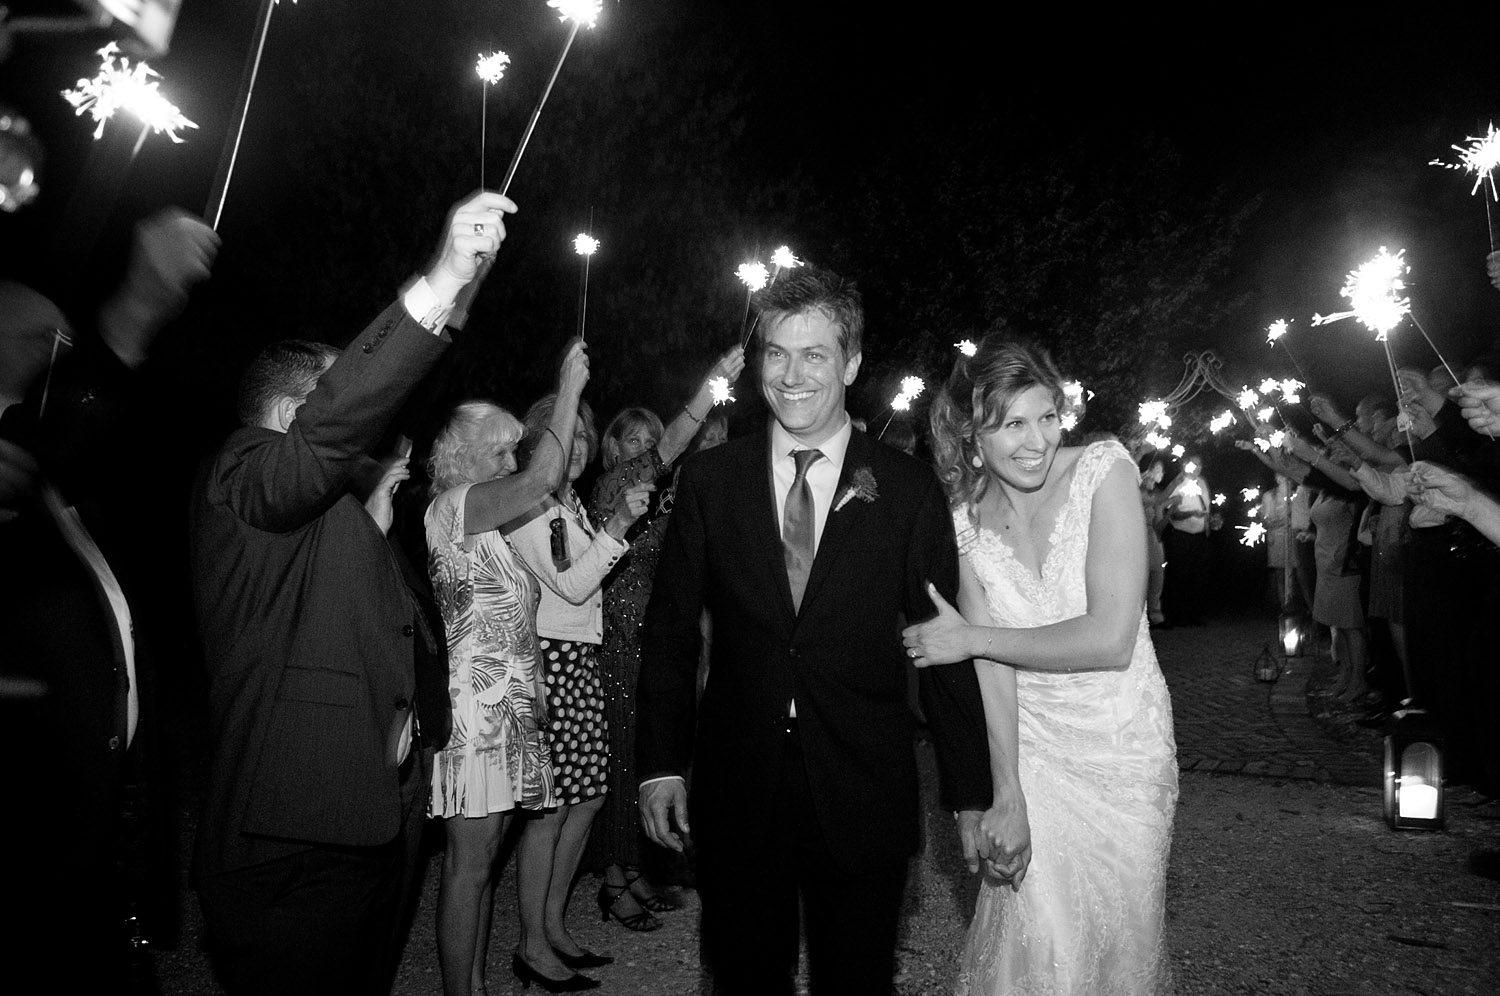 grand exit is a sparkler exit at this springtime wedding at Northwind Perennial gardens - a wisconsin wedding venue - as a film wedding photographer Lexia Frank photographs this destination wedding on film